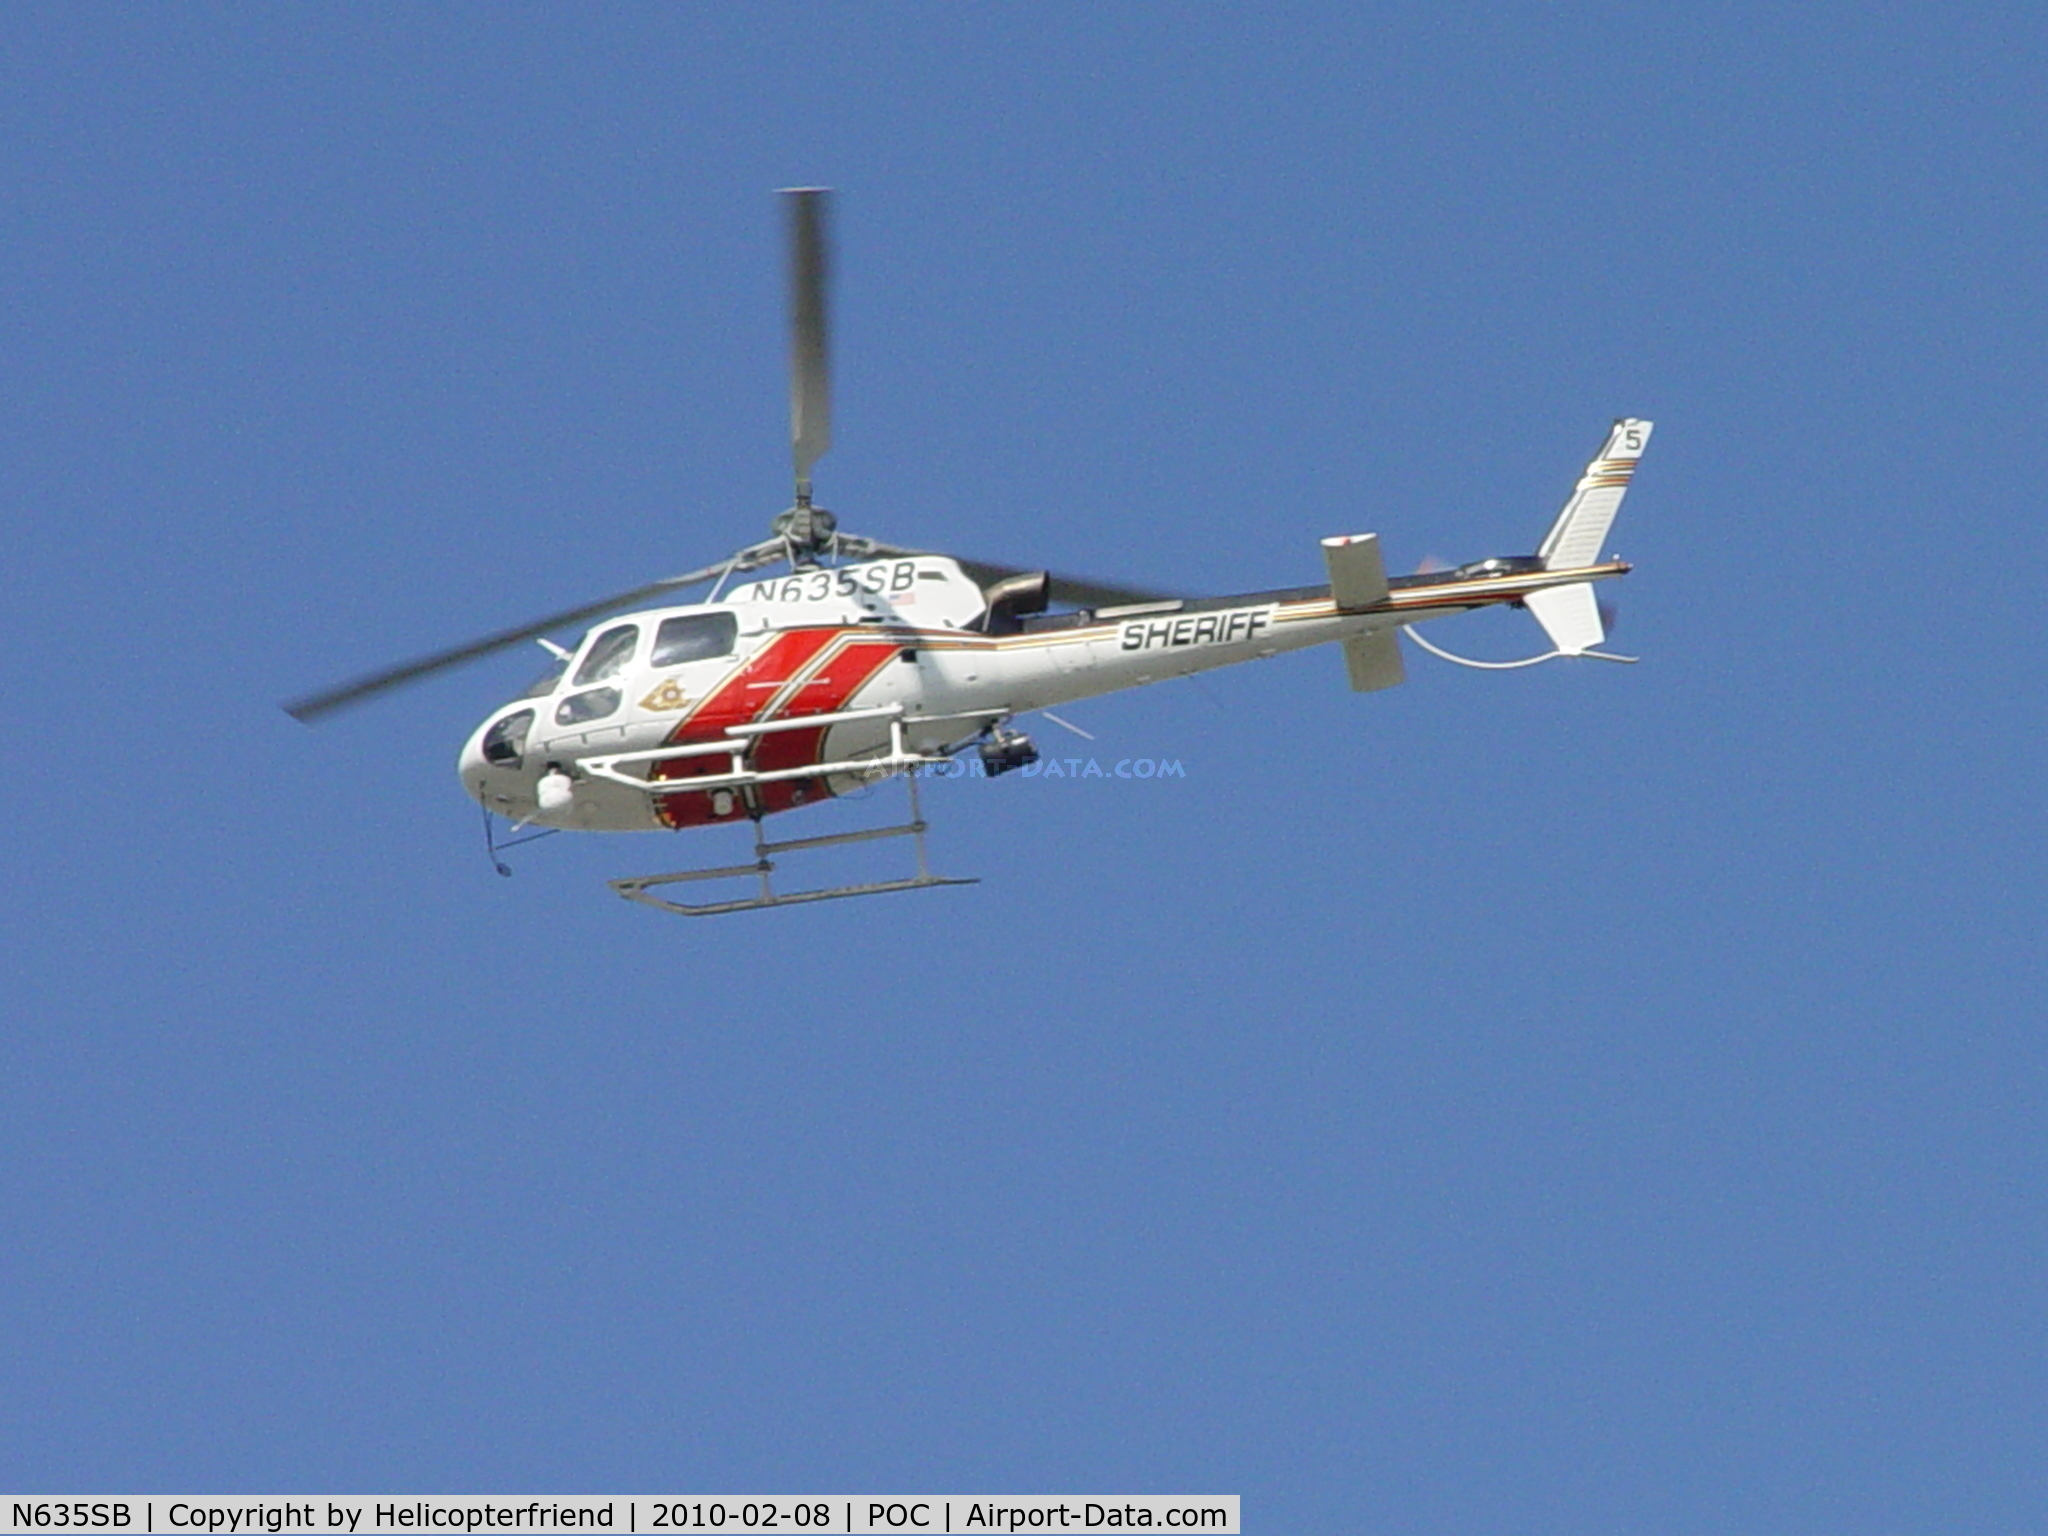 N635SB, 2006 Eurocopter AS-350B-3 Ecureuil C/N 4014, Westerly bound from Brackett